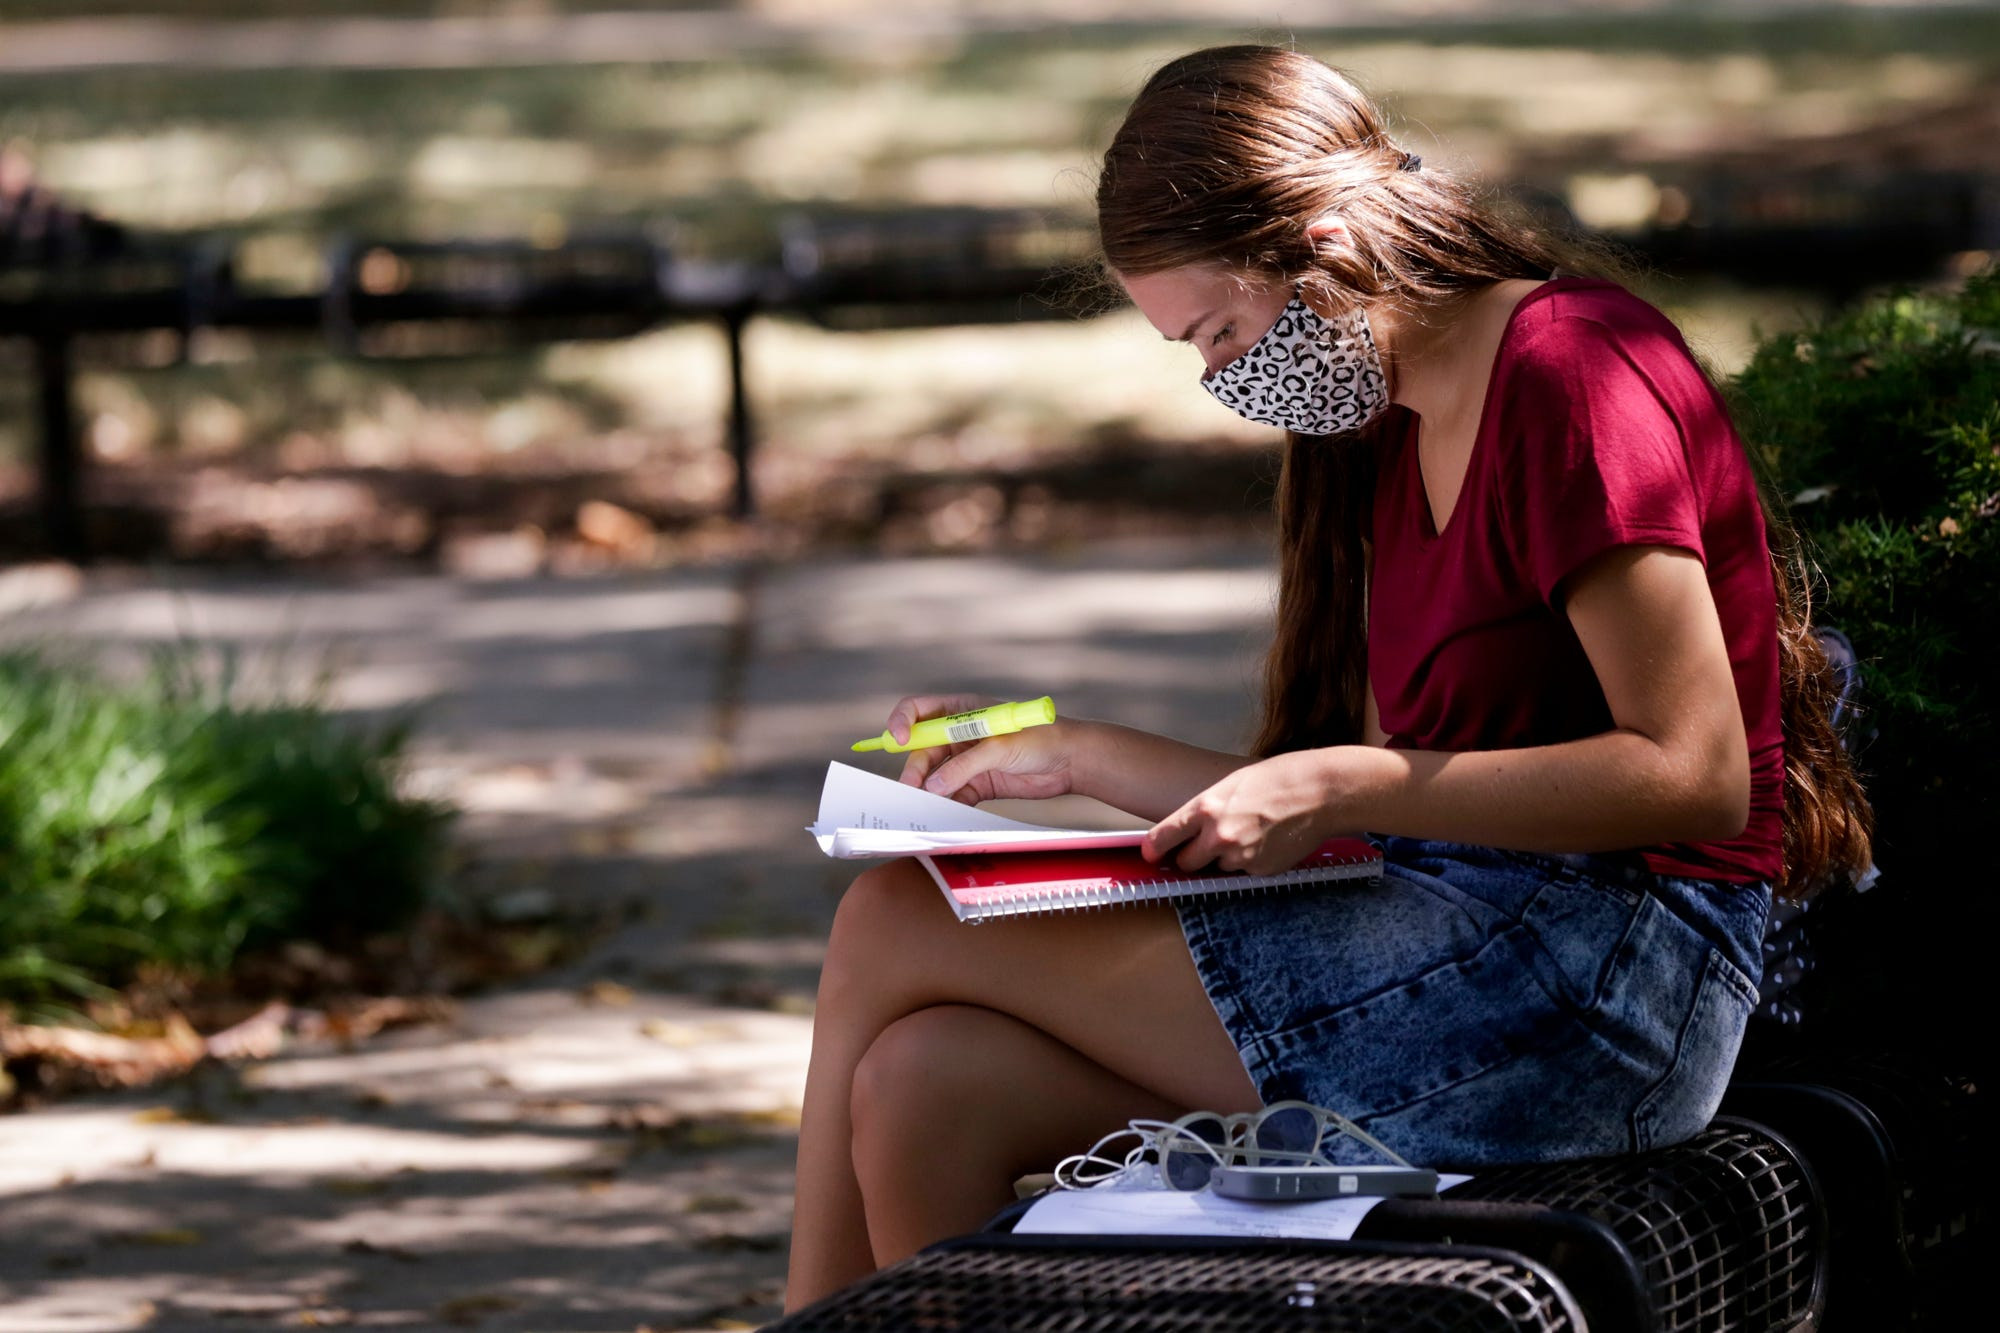 Sarah Connors, a senior animal science major at Purdue University, sits in the shade by the Purdue Bell tower before her afternoon classes Monday in West Lafayette.